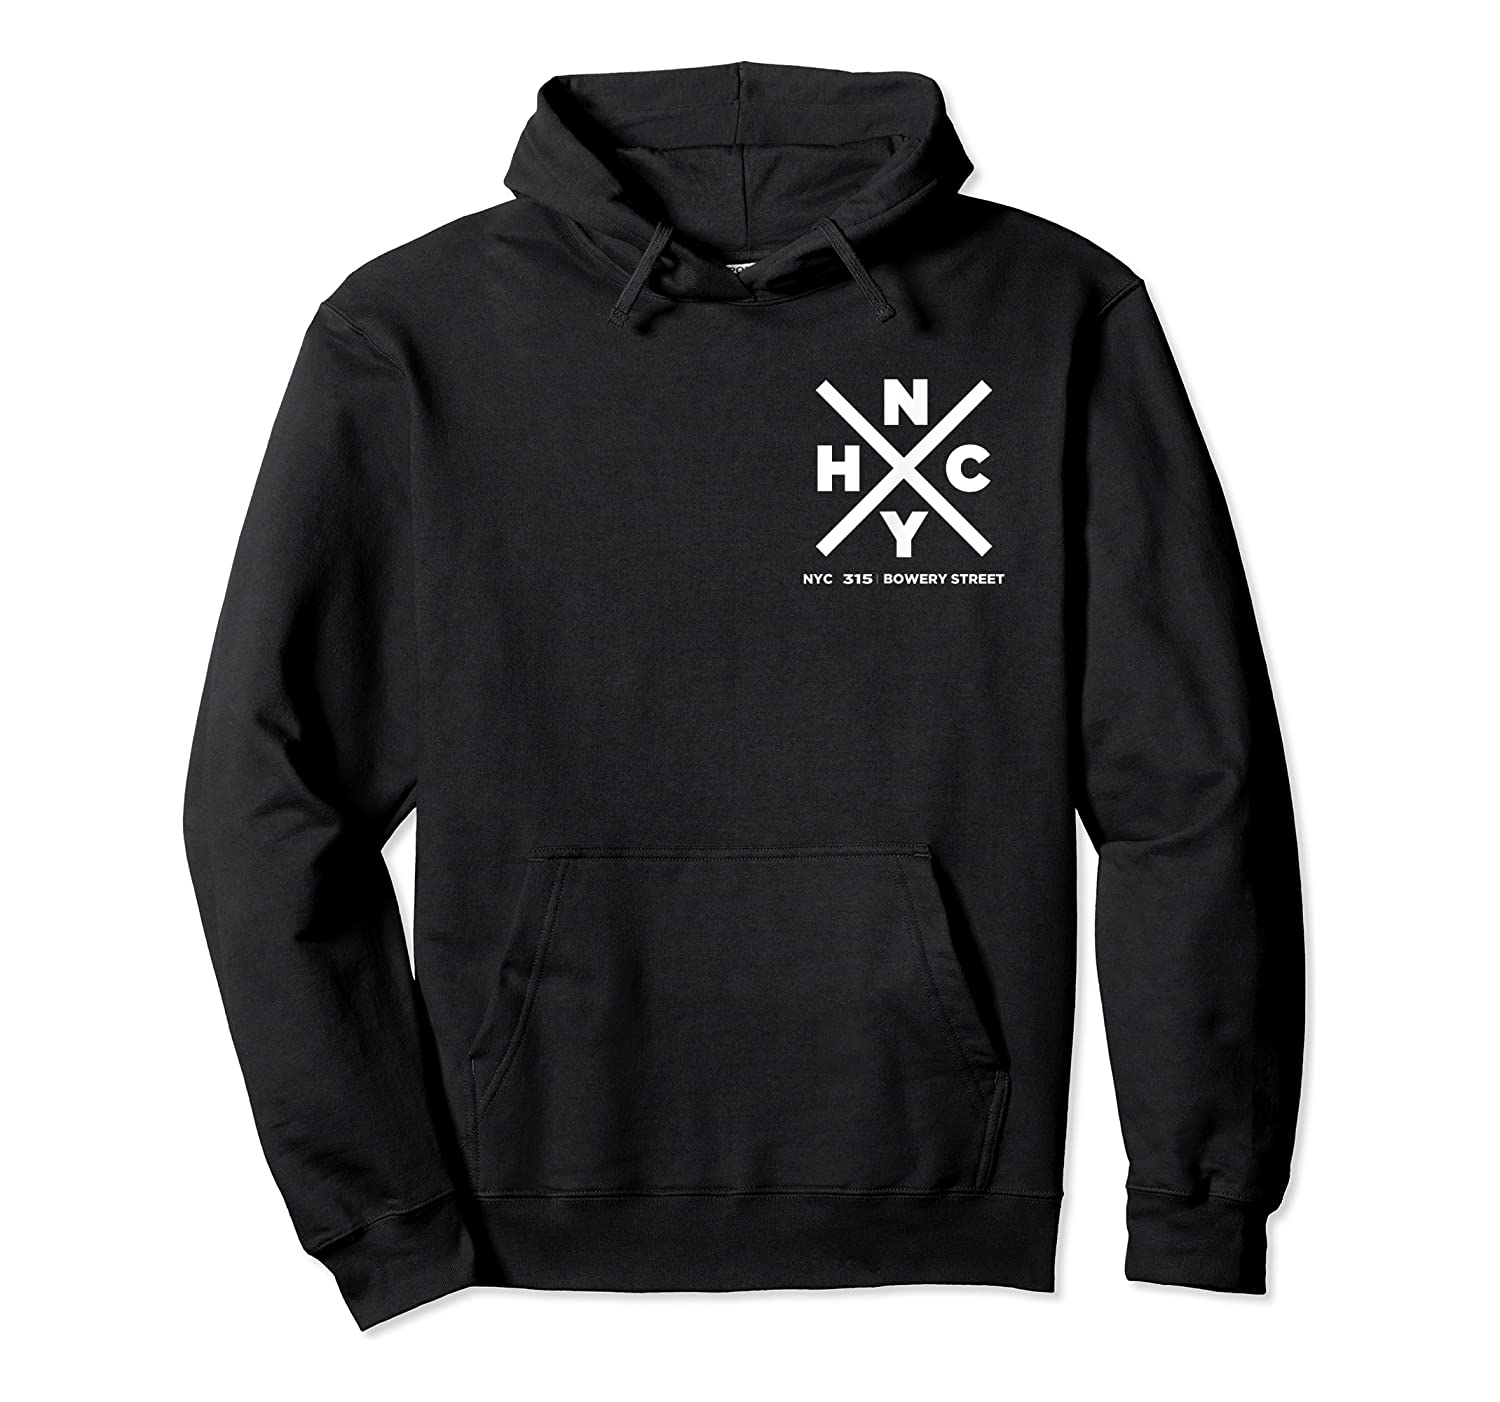 Nyhc Newyork Hardcore Punk T Shirt Front N Back Side Print Unisex Pullover Hoodie